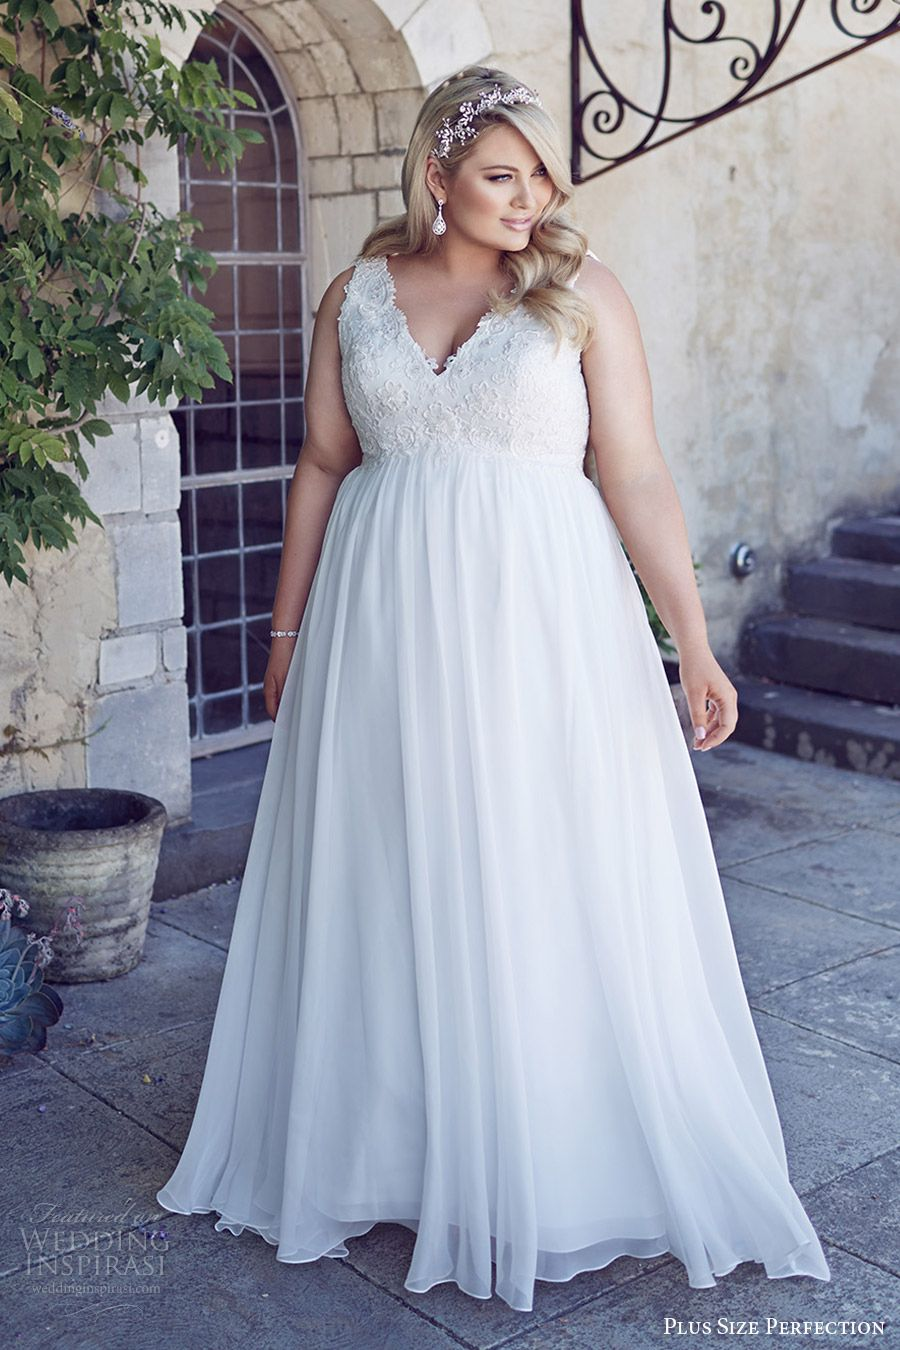 44a704b4f624 Plus Size Empire Waist Wedding Dress - Informal Wedding Dresses for Older  Brides Check more at